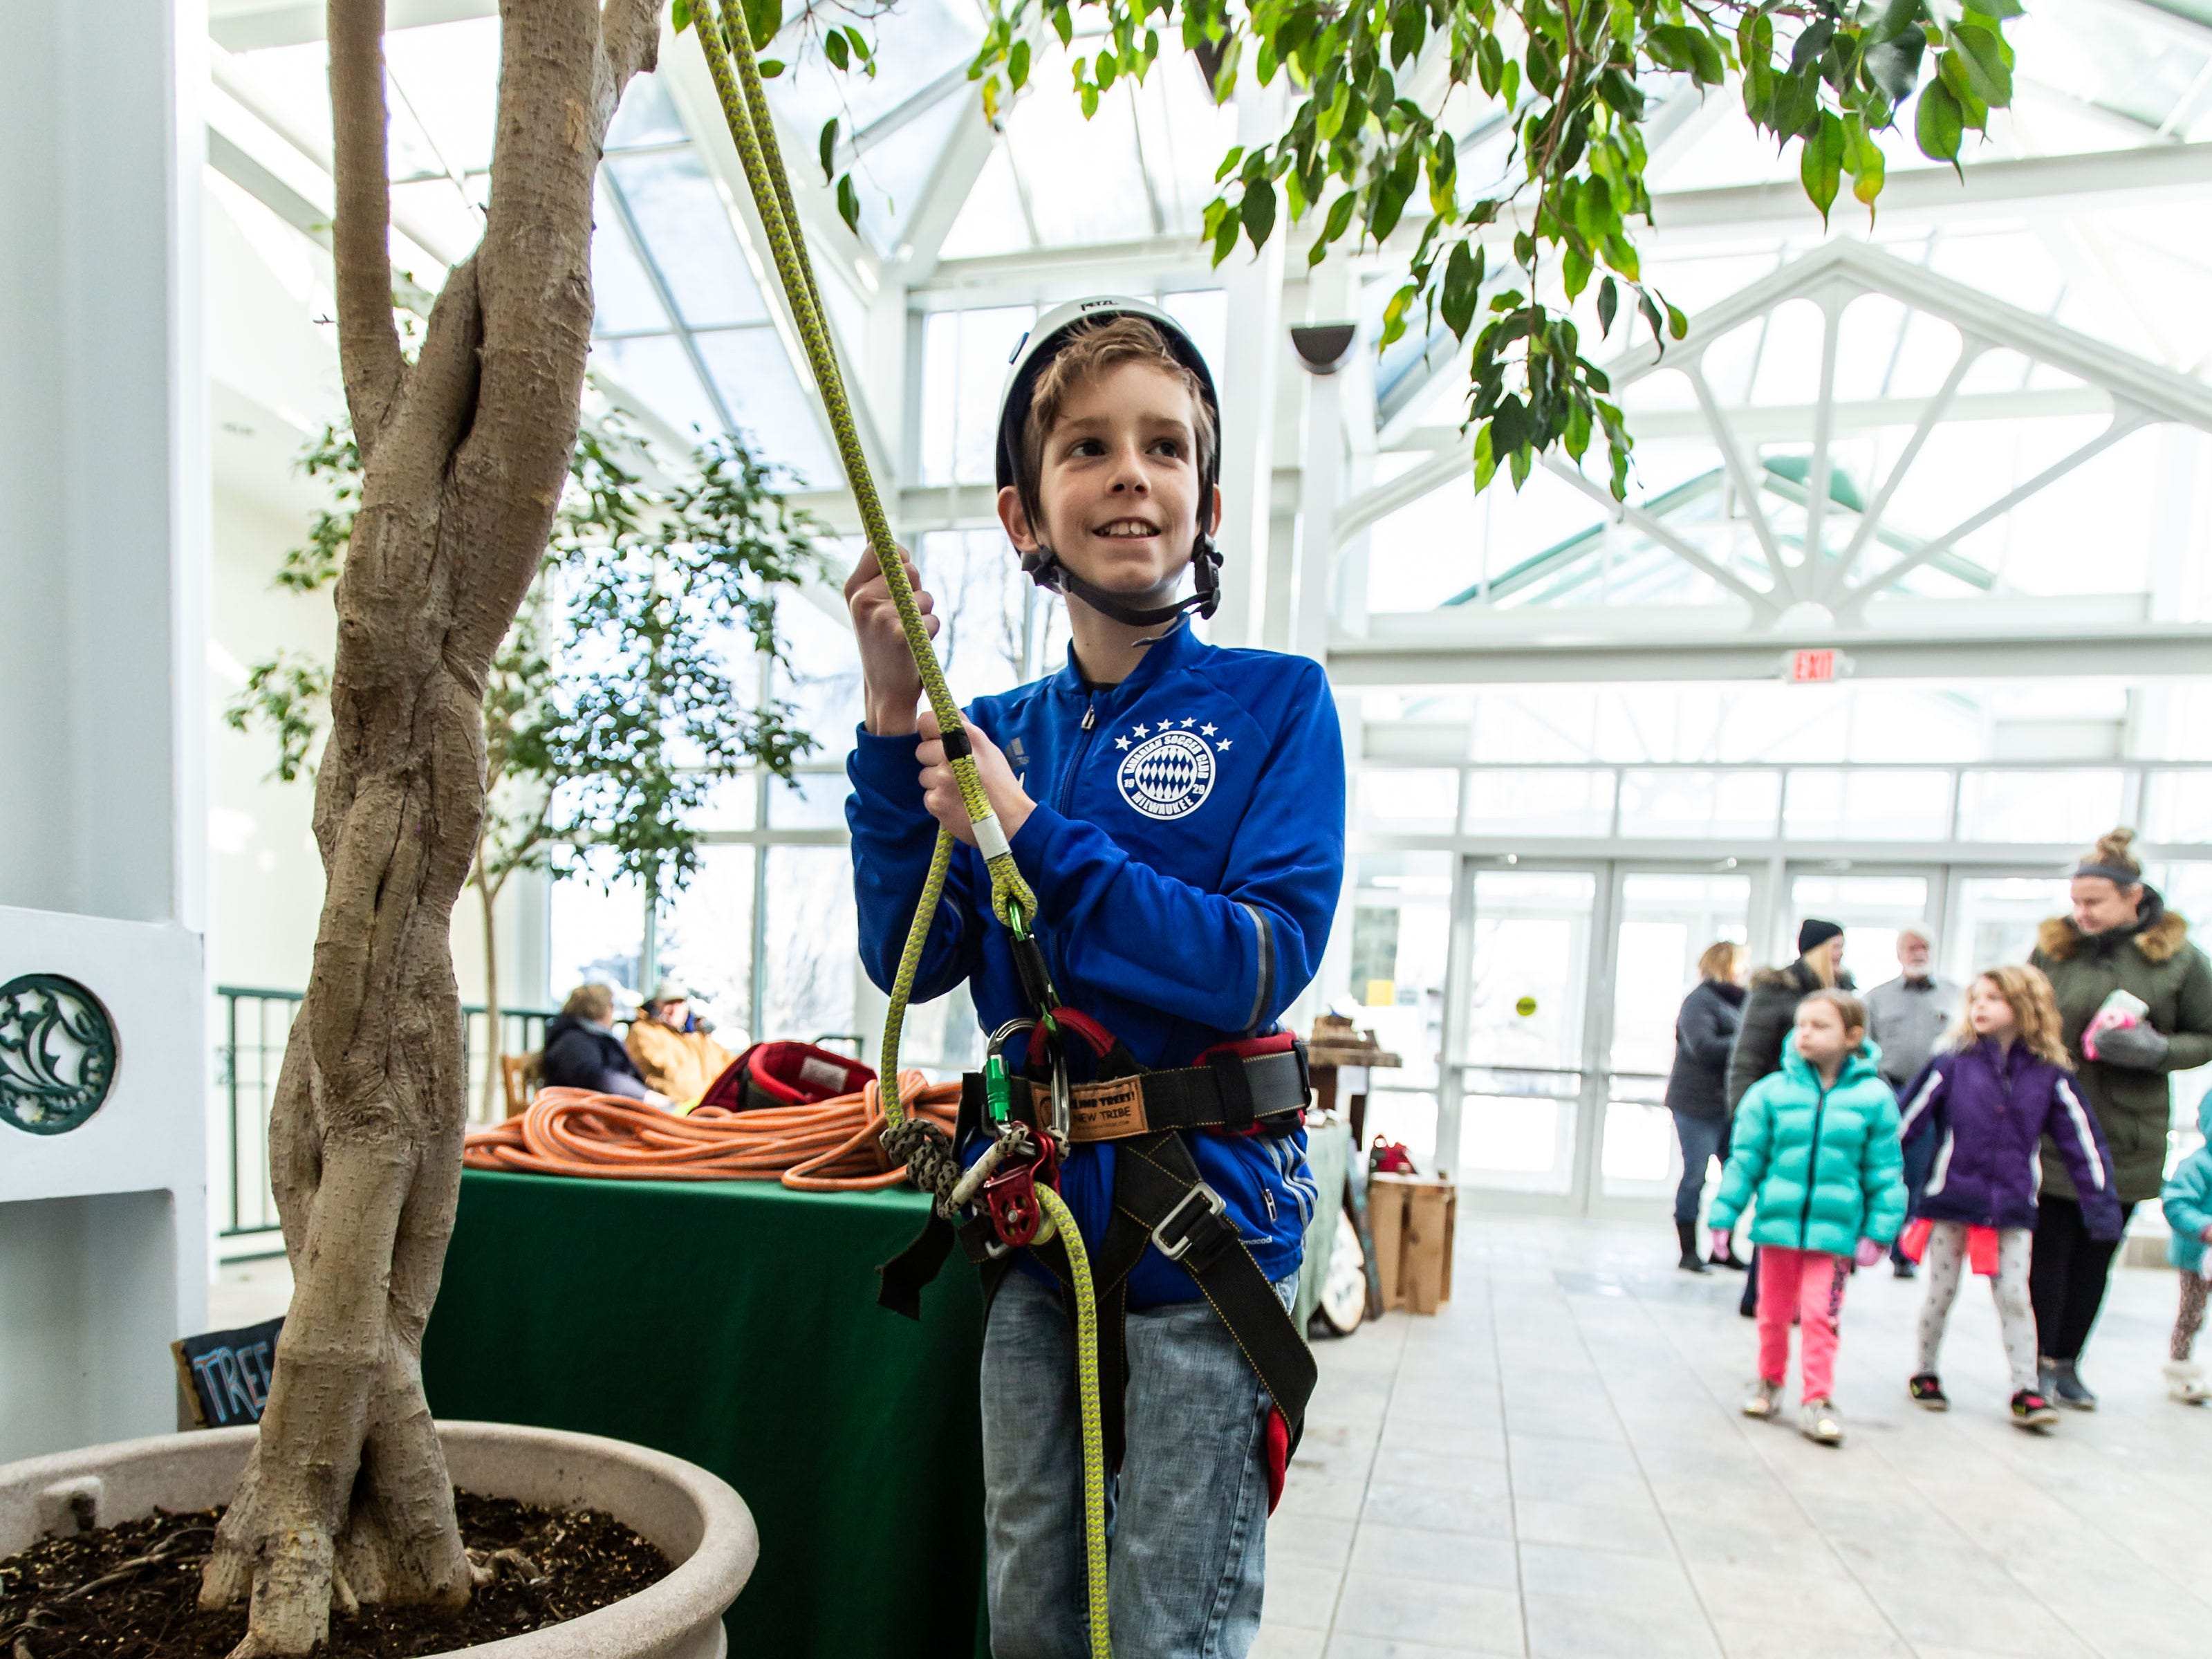 Matthias Varela, 12, of Franklin checks out an arborist's tree climbing rig during Winterfest at Boerner Botanical Gardens in Hales Corners on Sunday, Jan. 20, 2019. The annual event, hosted by the Friends of Boerner Botanical Gardens, features children's crafts, informational displays, expert-led nature walks and more.